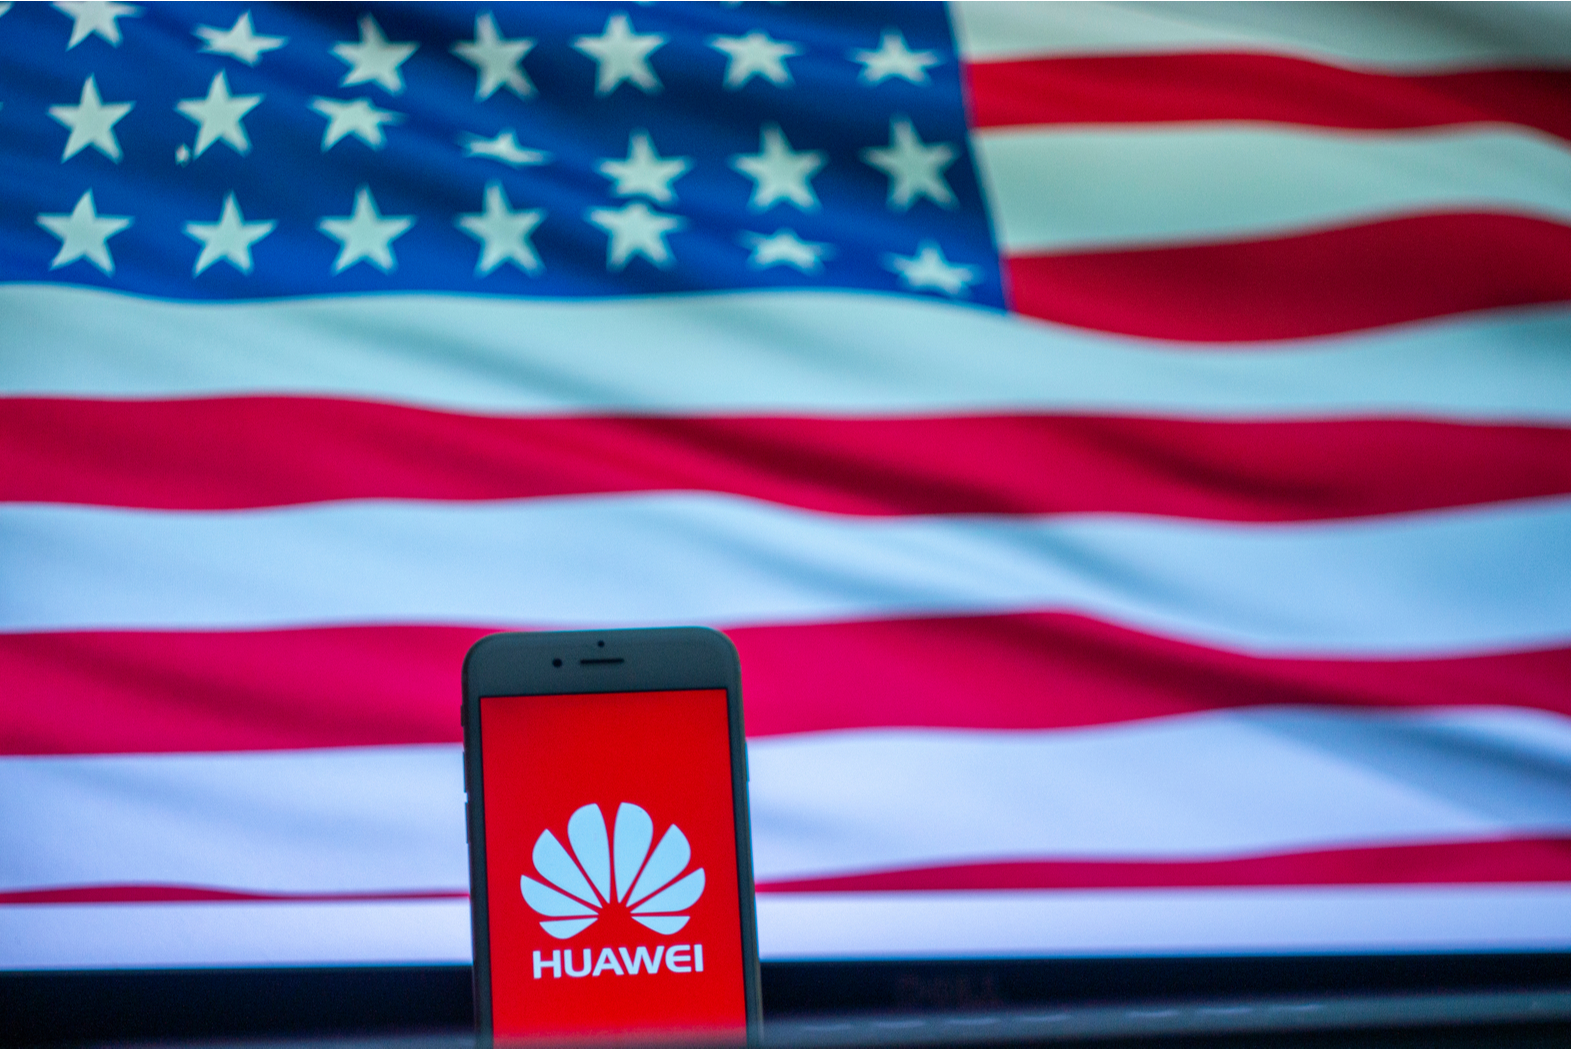 Huawei CFO attends extradition hearing / UN holds 2019 Climate Summit / Financial services industry heads to Sibos